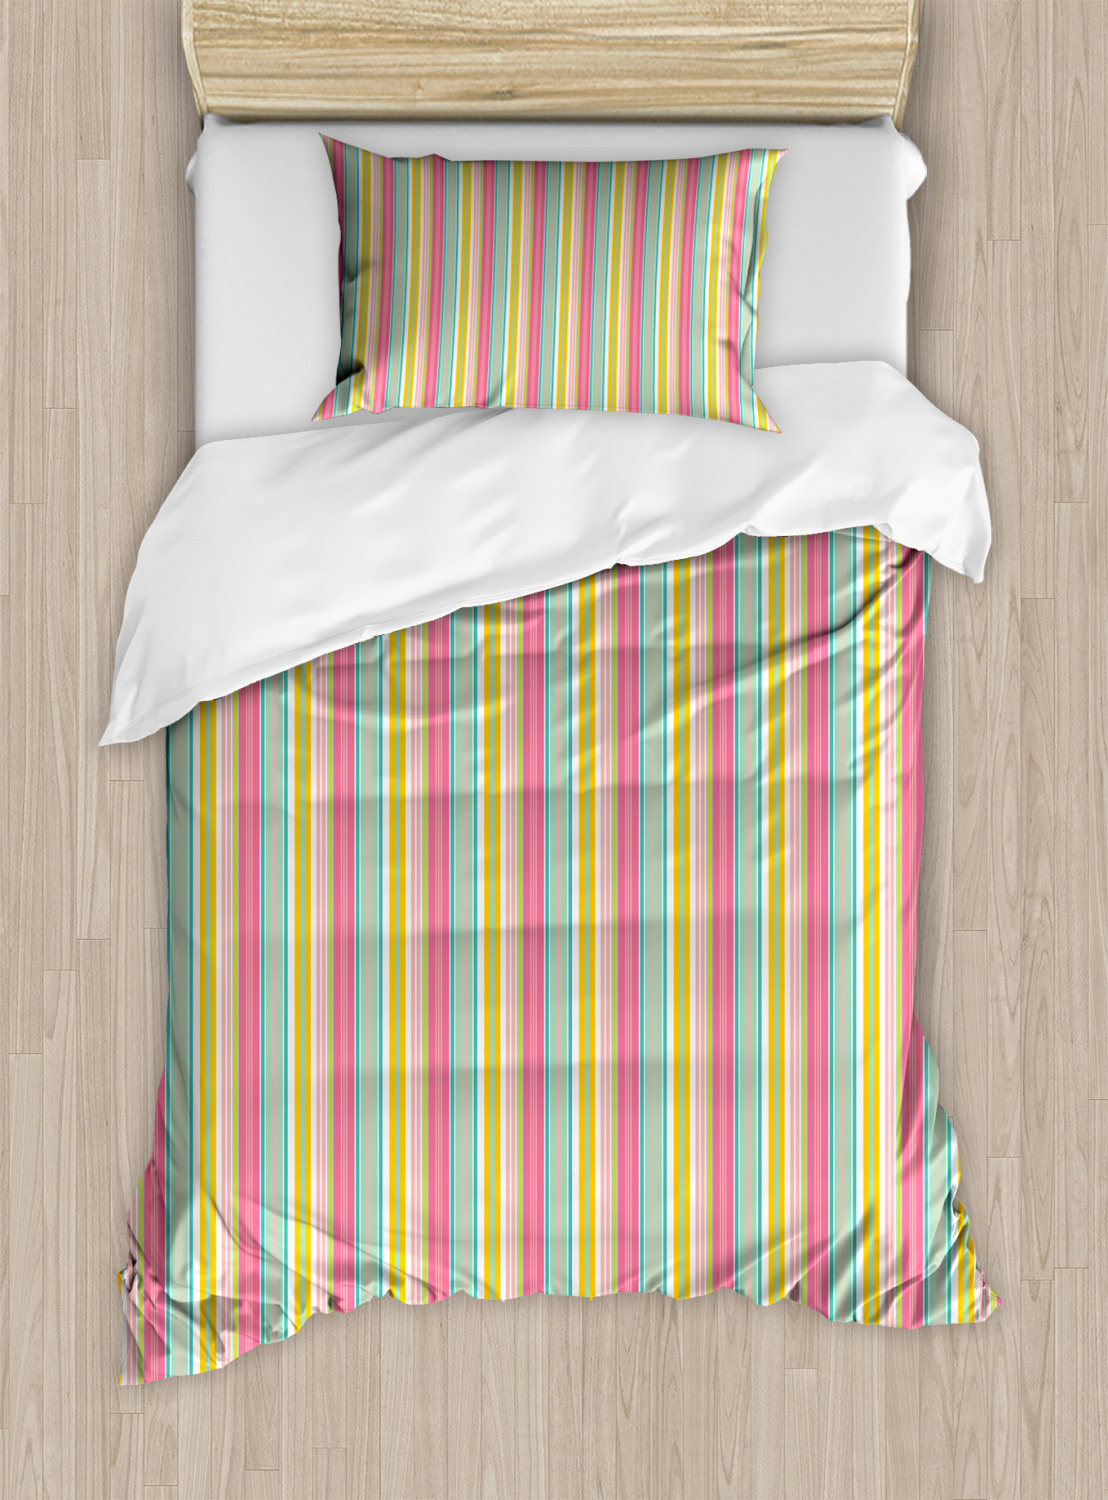 Teal-and-White-Duvet-Cover-Set-Twin-Queen-King-Sizes-with-Pillow-Shams-Ambesonne thumbnail 35